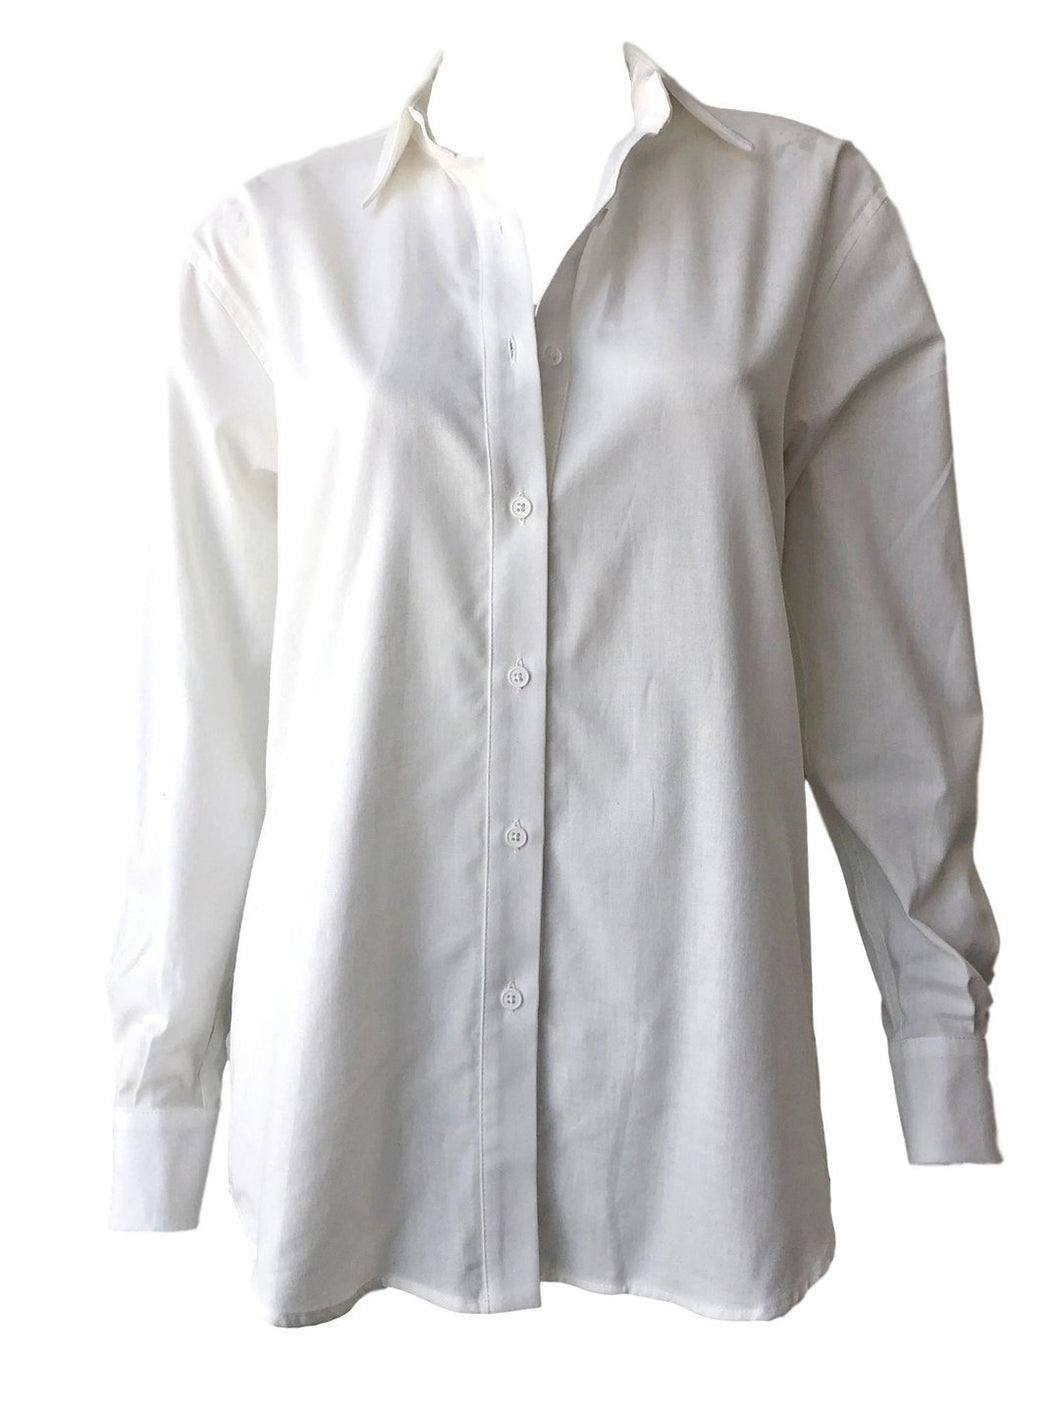 Emerson Fry Button Front Shirt in White